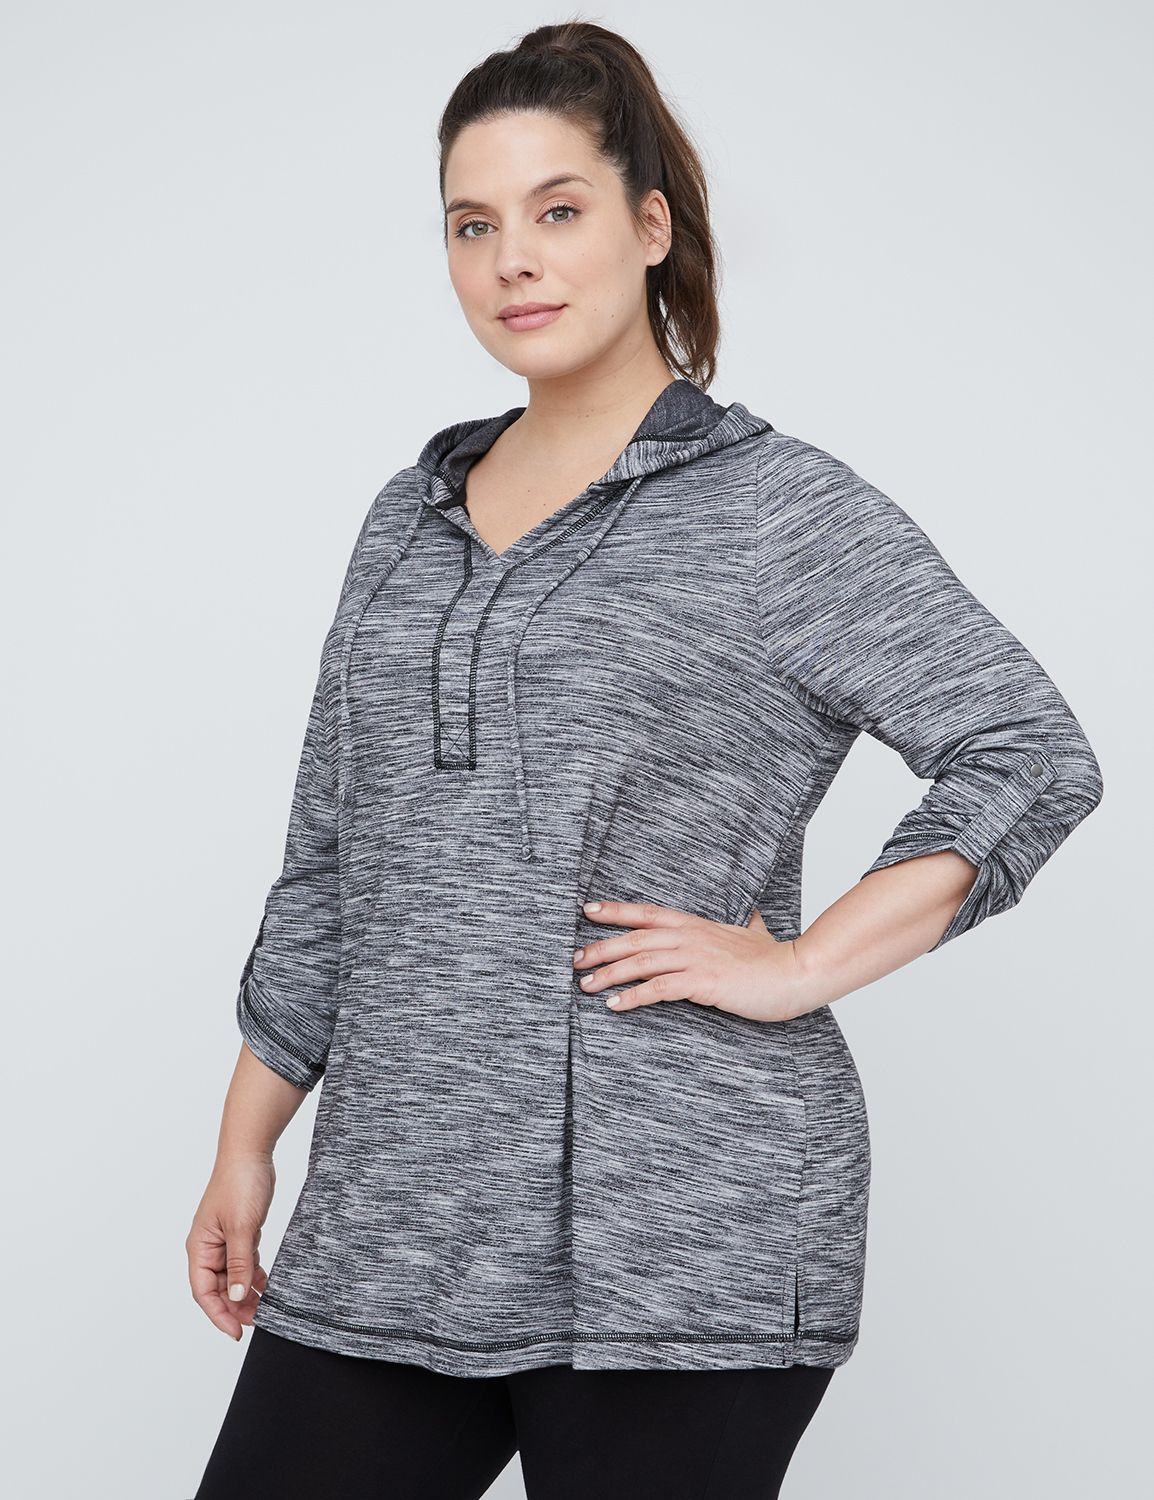 French Terry Active Pullover 300123022